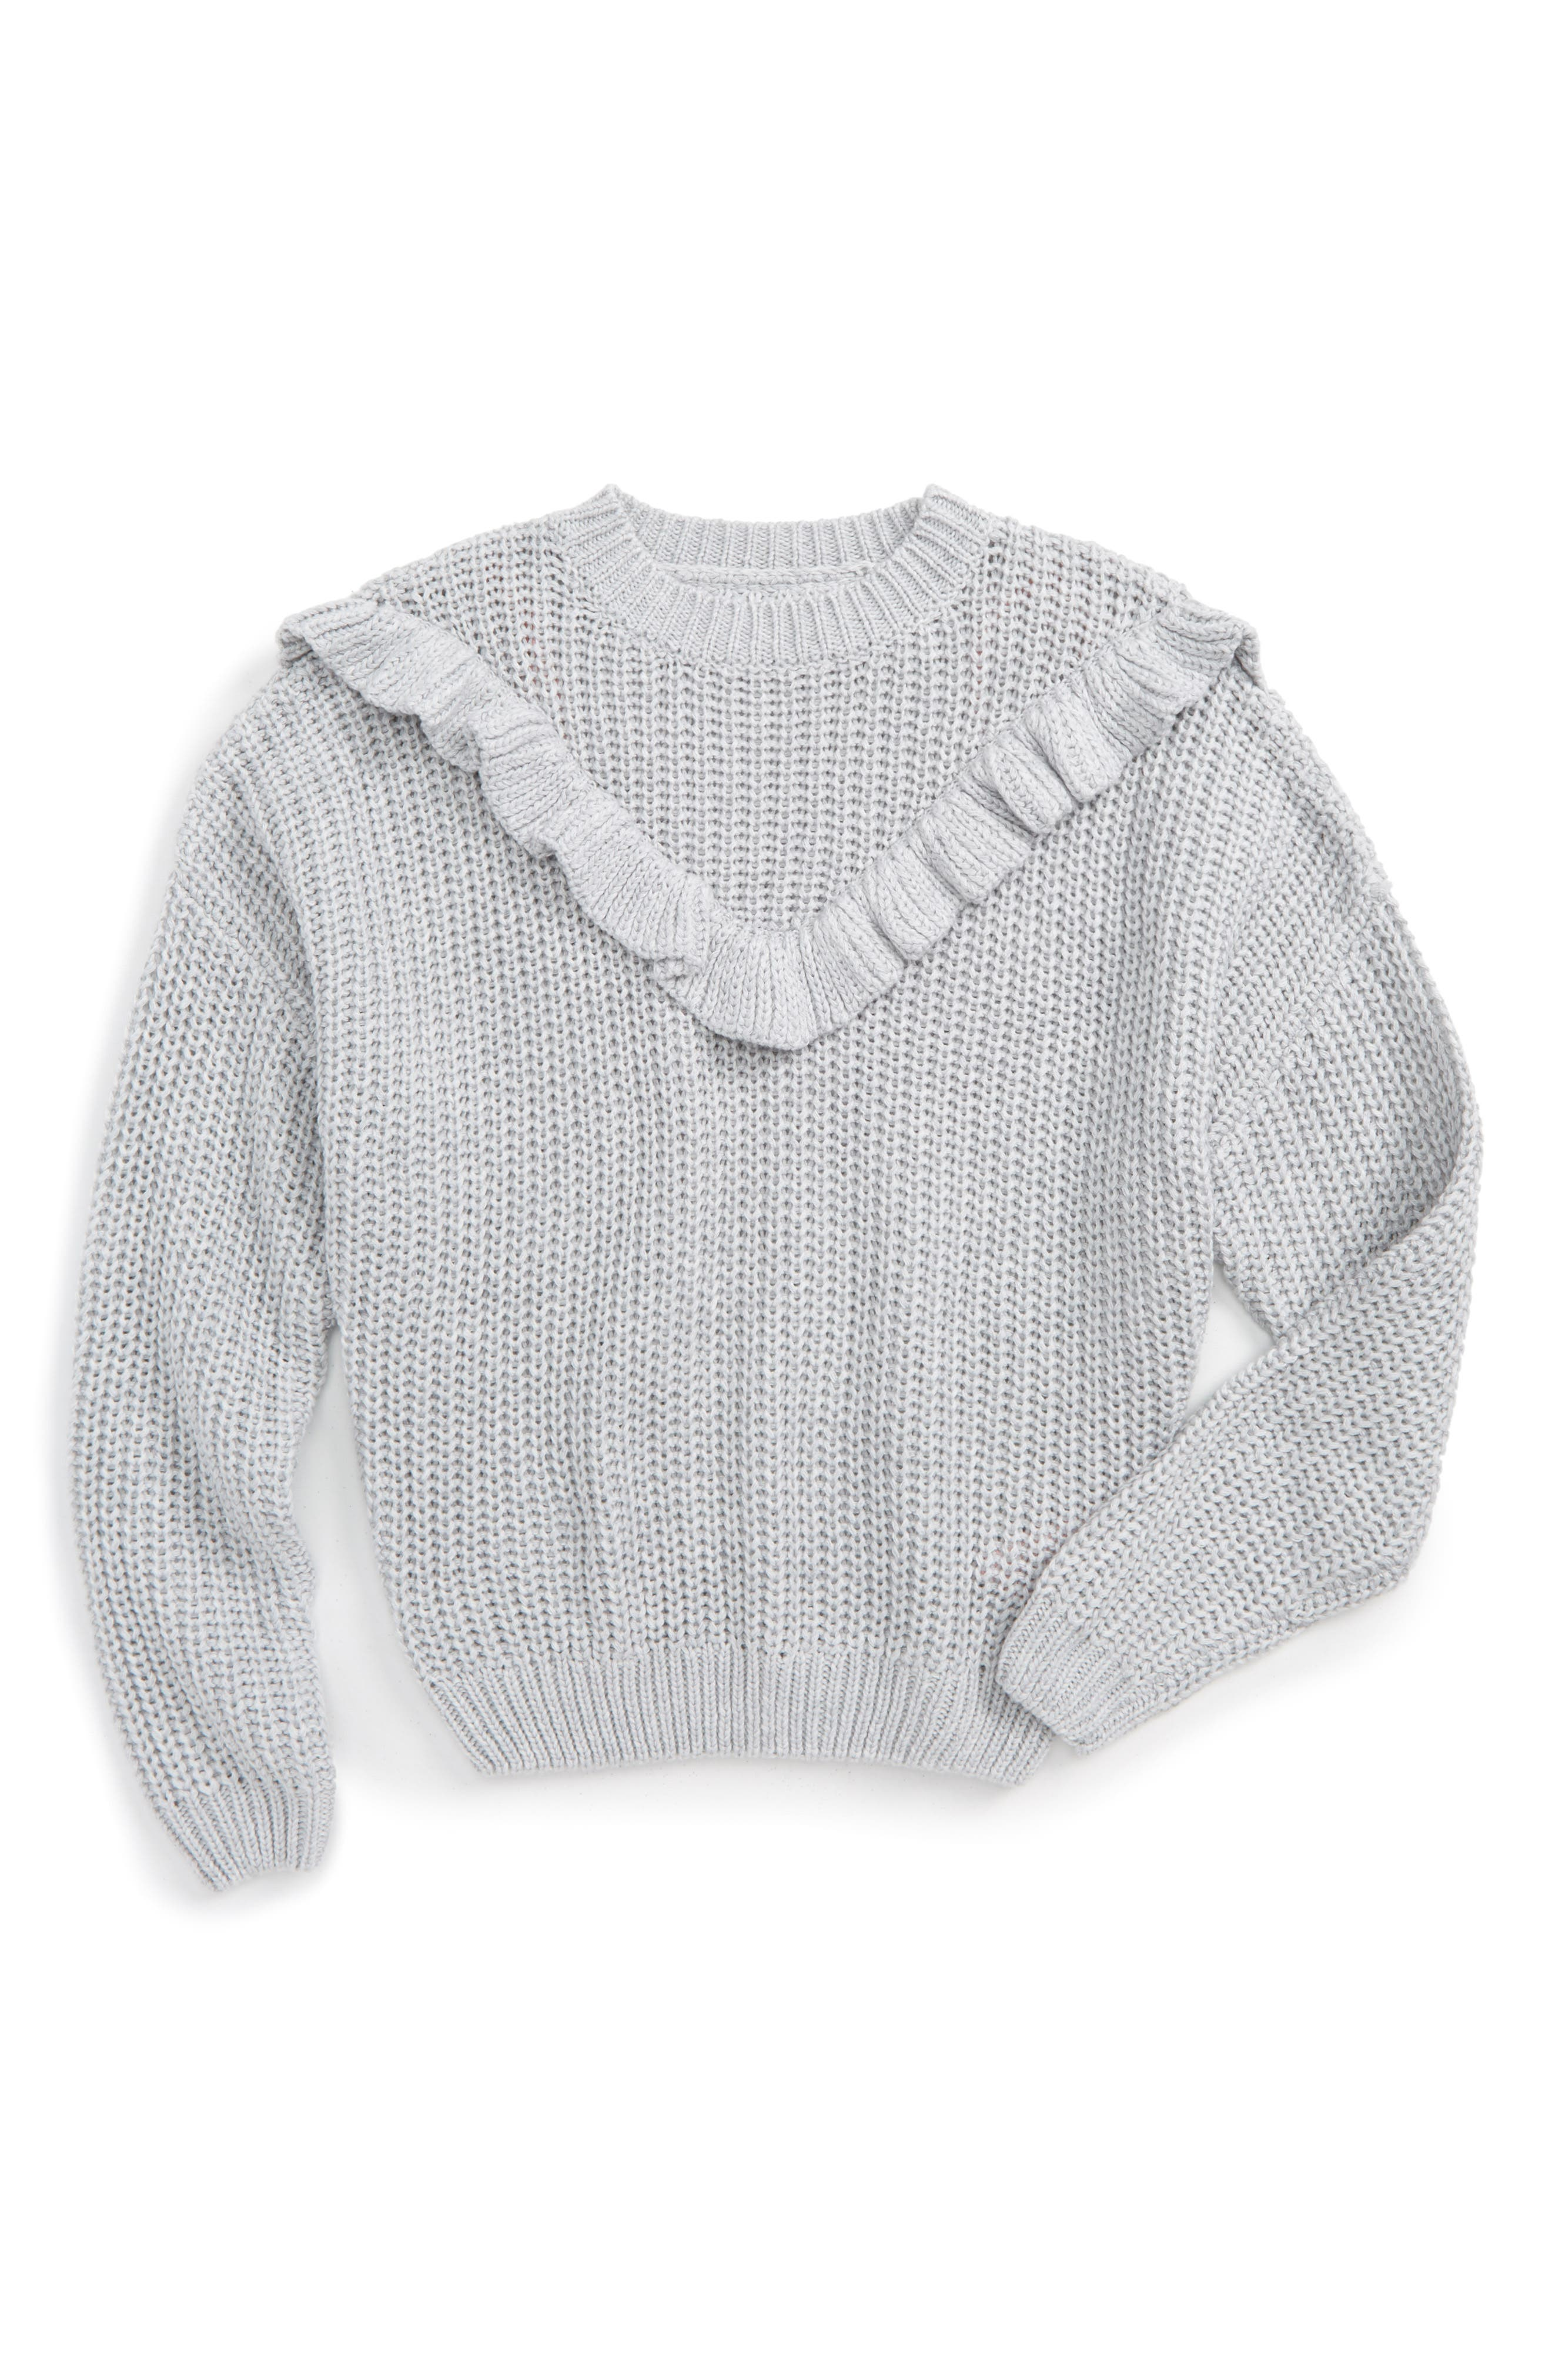 Alternate Image 1 Selected - BLANCNYC Ruffle Sweater (Big Girls)